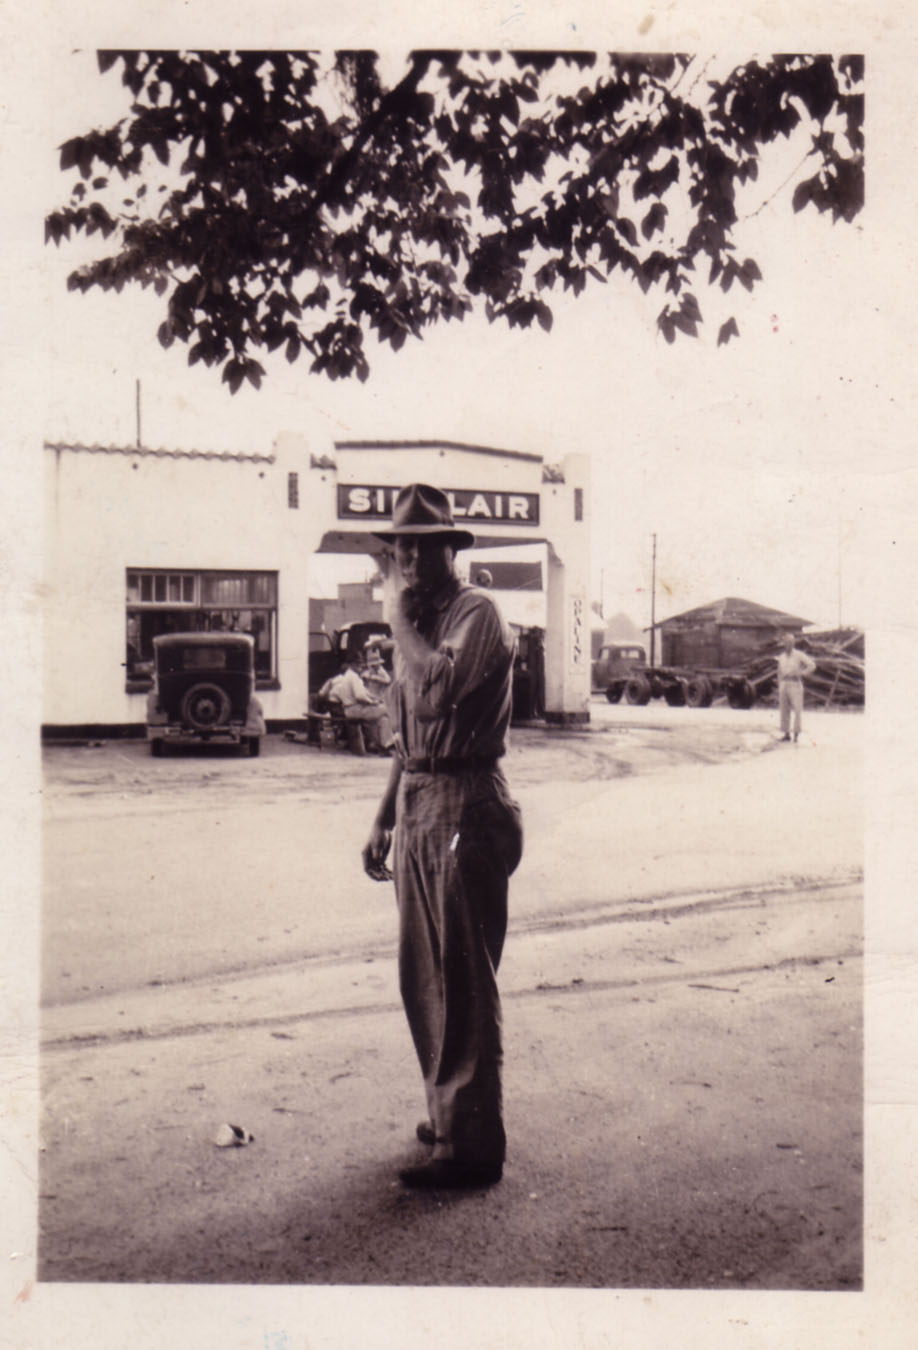 Earl Boney with old service station in background.  Photo courtesy of Frank Boney.